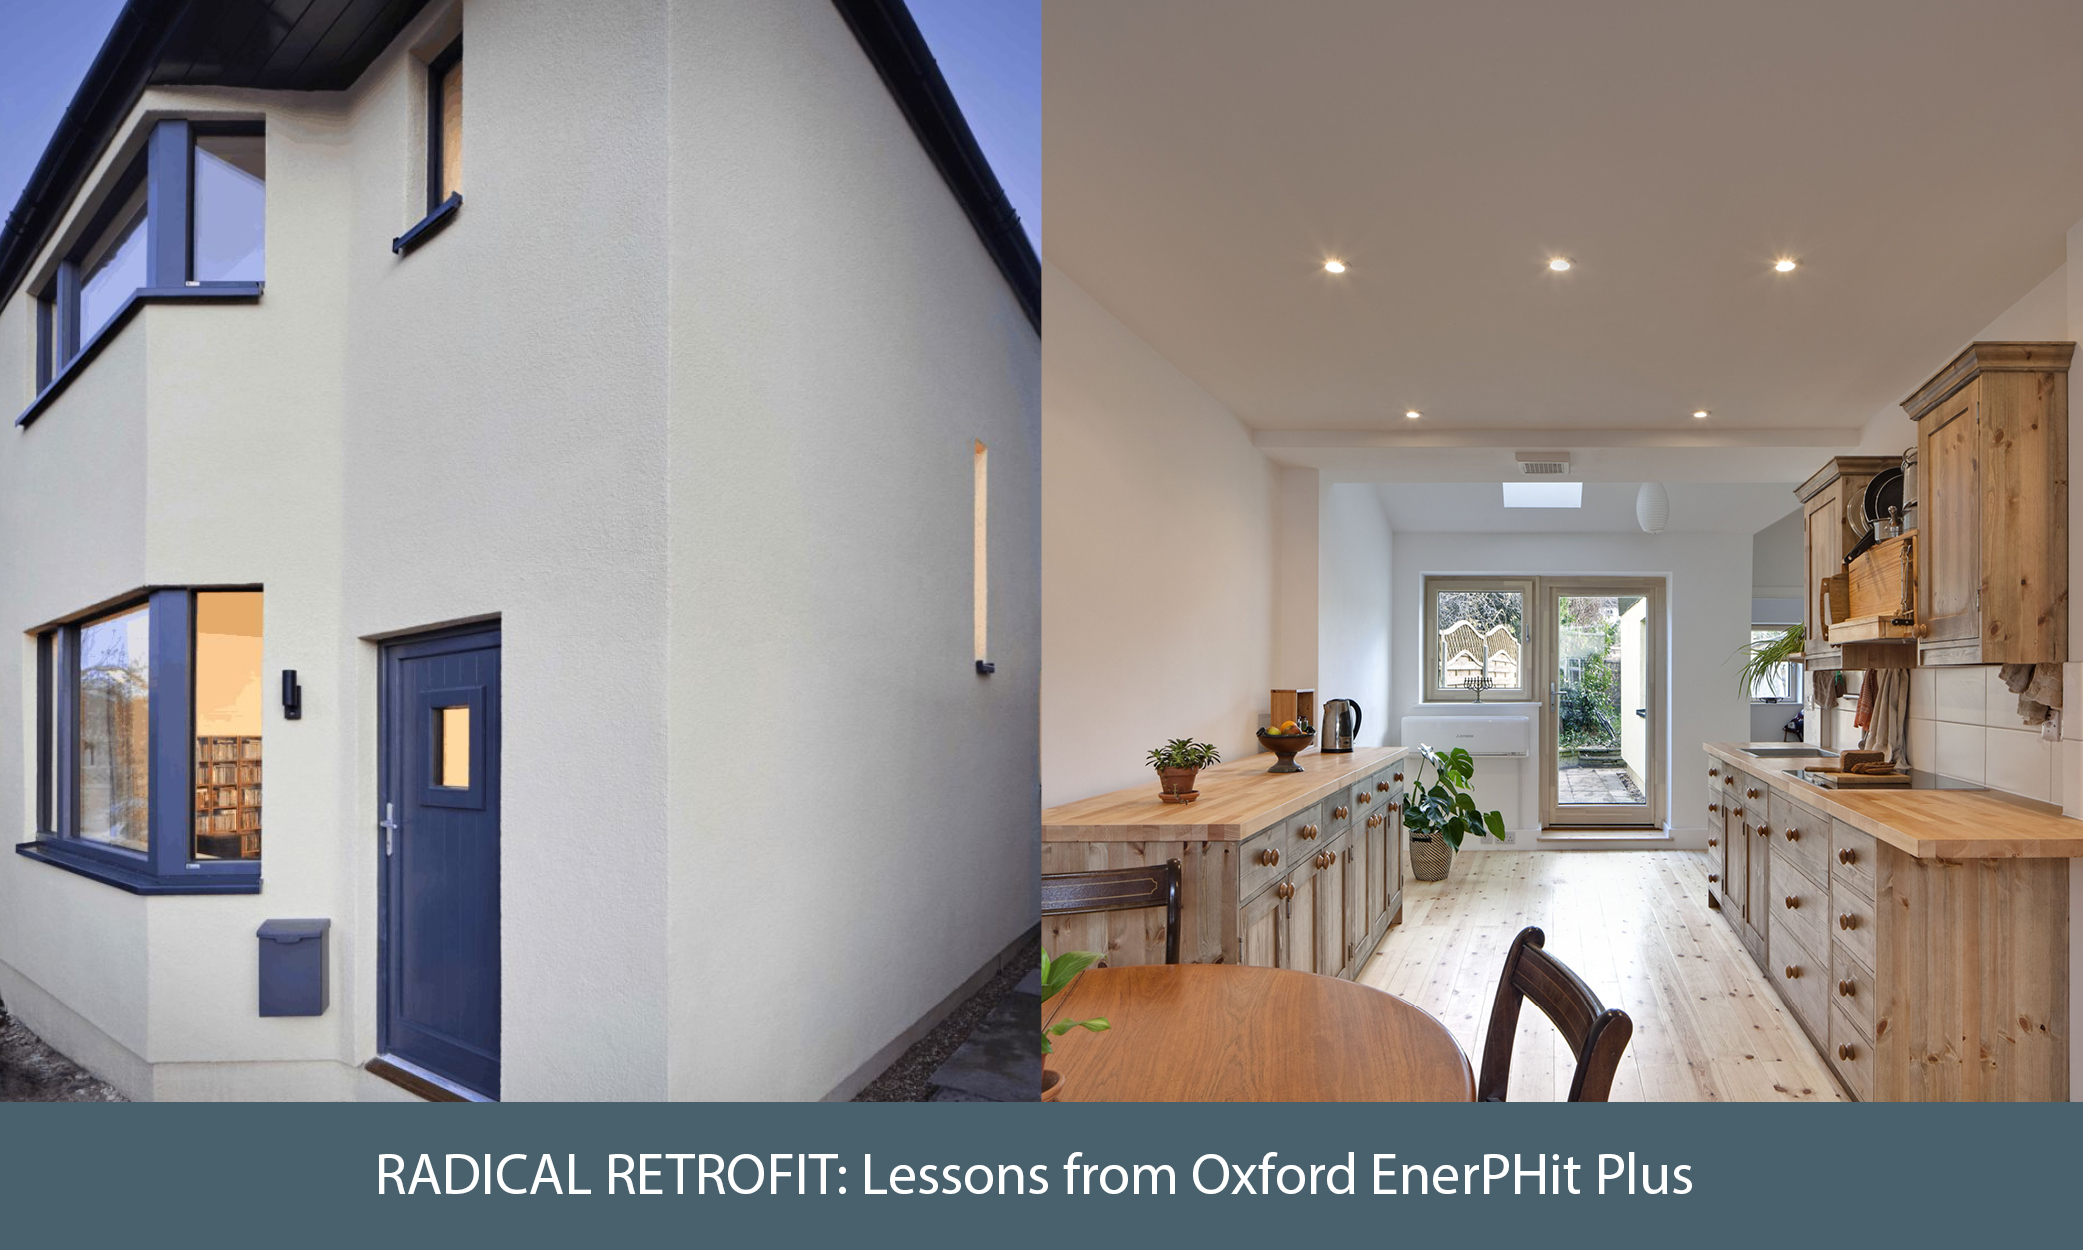 Radical Retrofit: Lessons from the Oxford EnerPHit Plus, Image credit: Eco Design Consultants